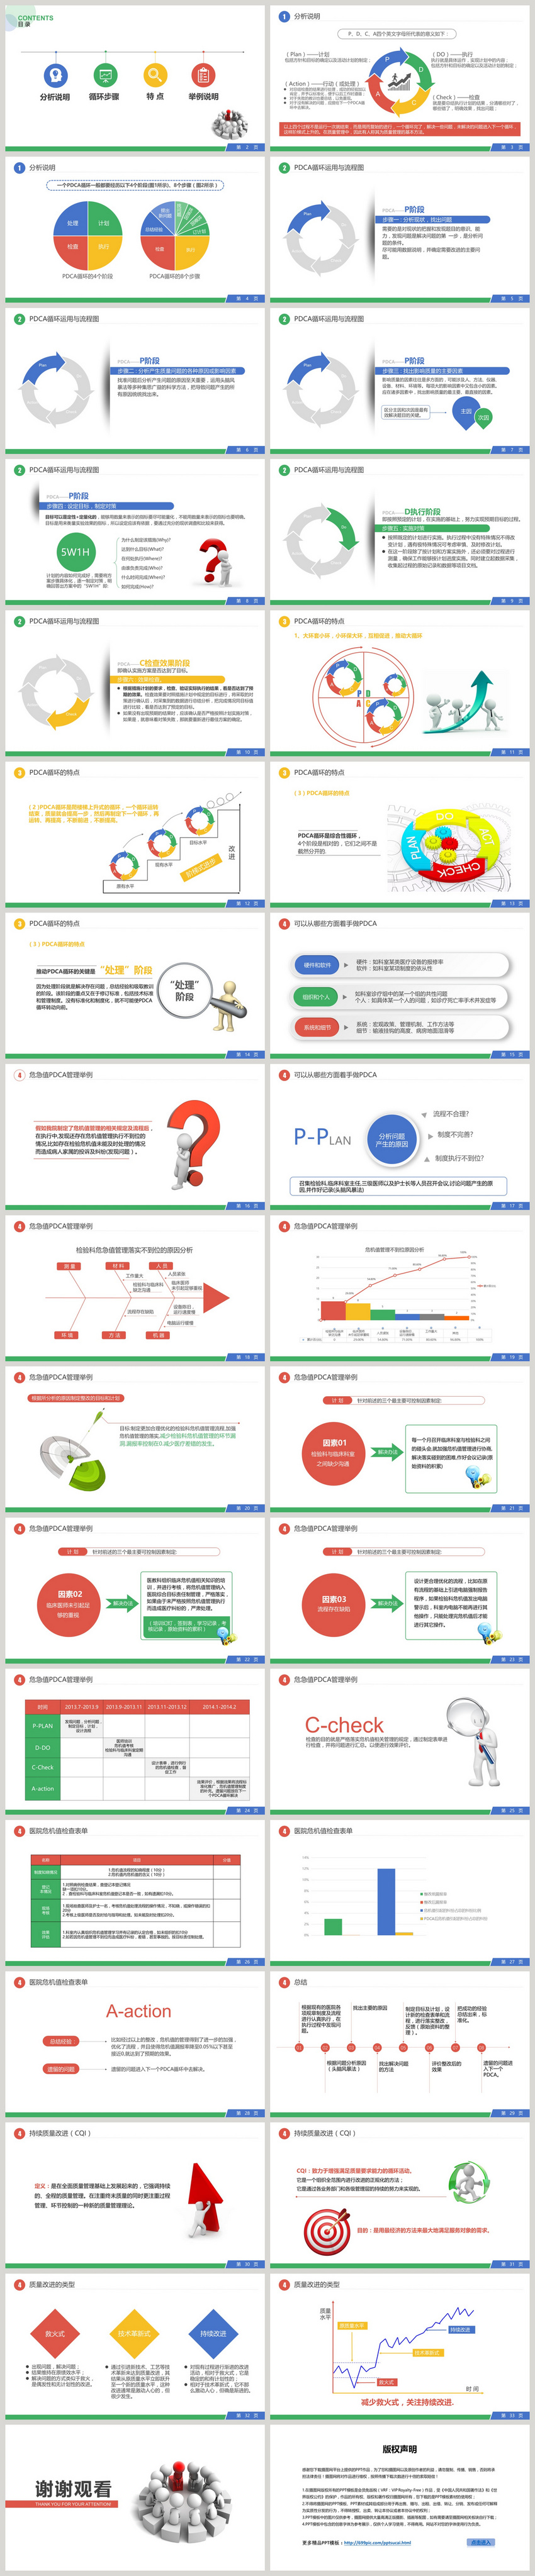 Pdca Loop Work Method Training Ppt Template Powerpoint Templete Ppt Free Download 400128212 Lovepik Com